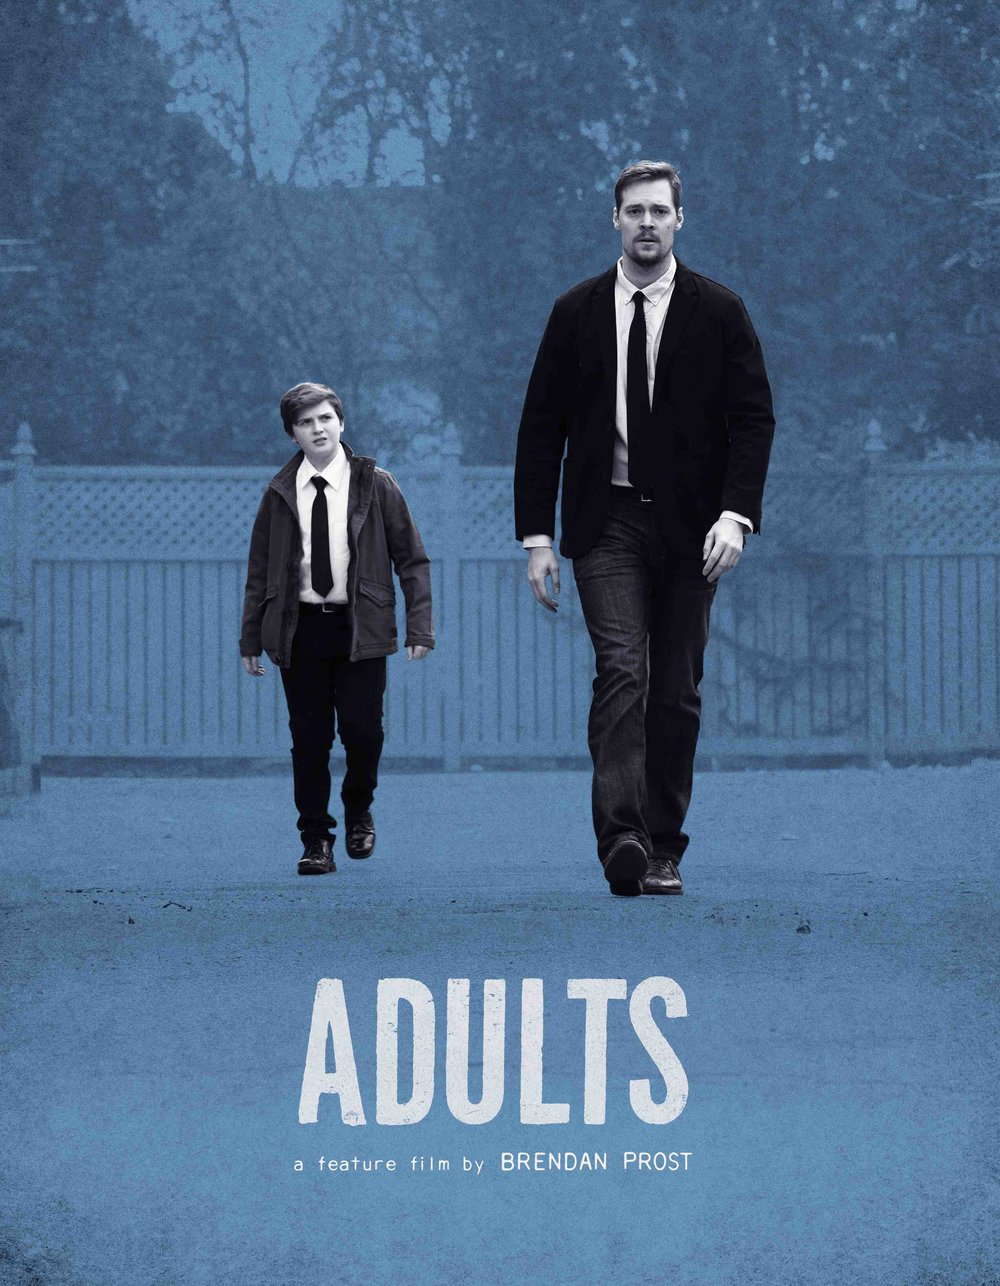 ADULTS - 2019 / Drama / in development